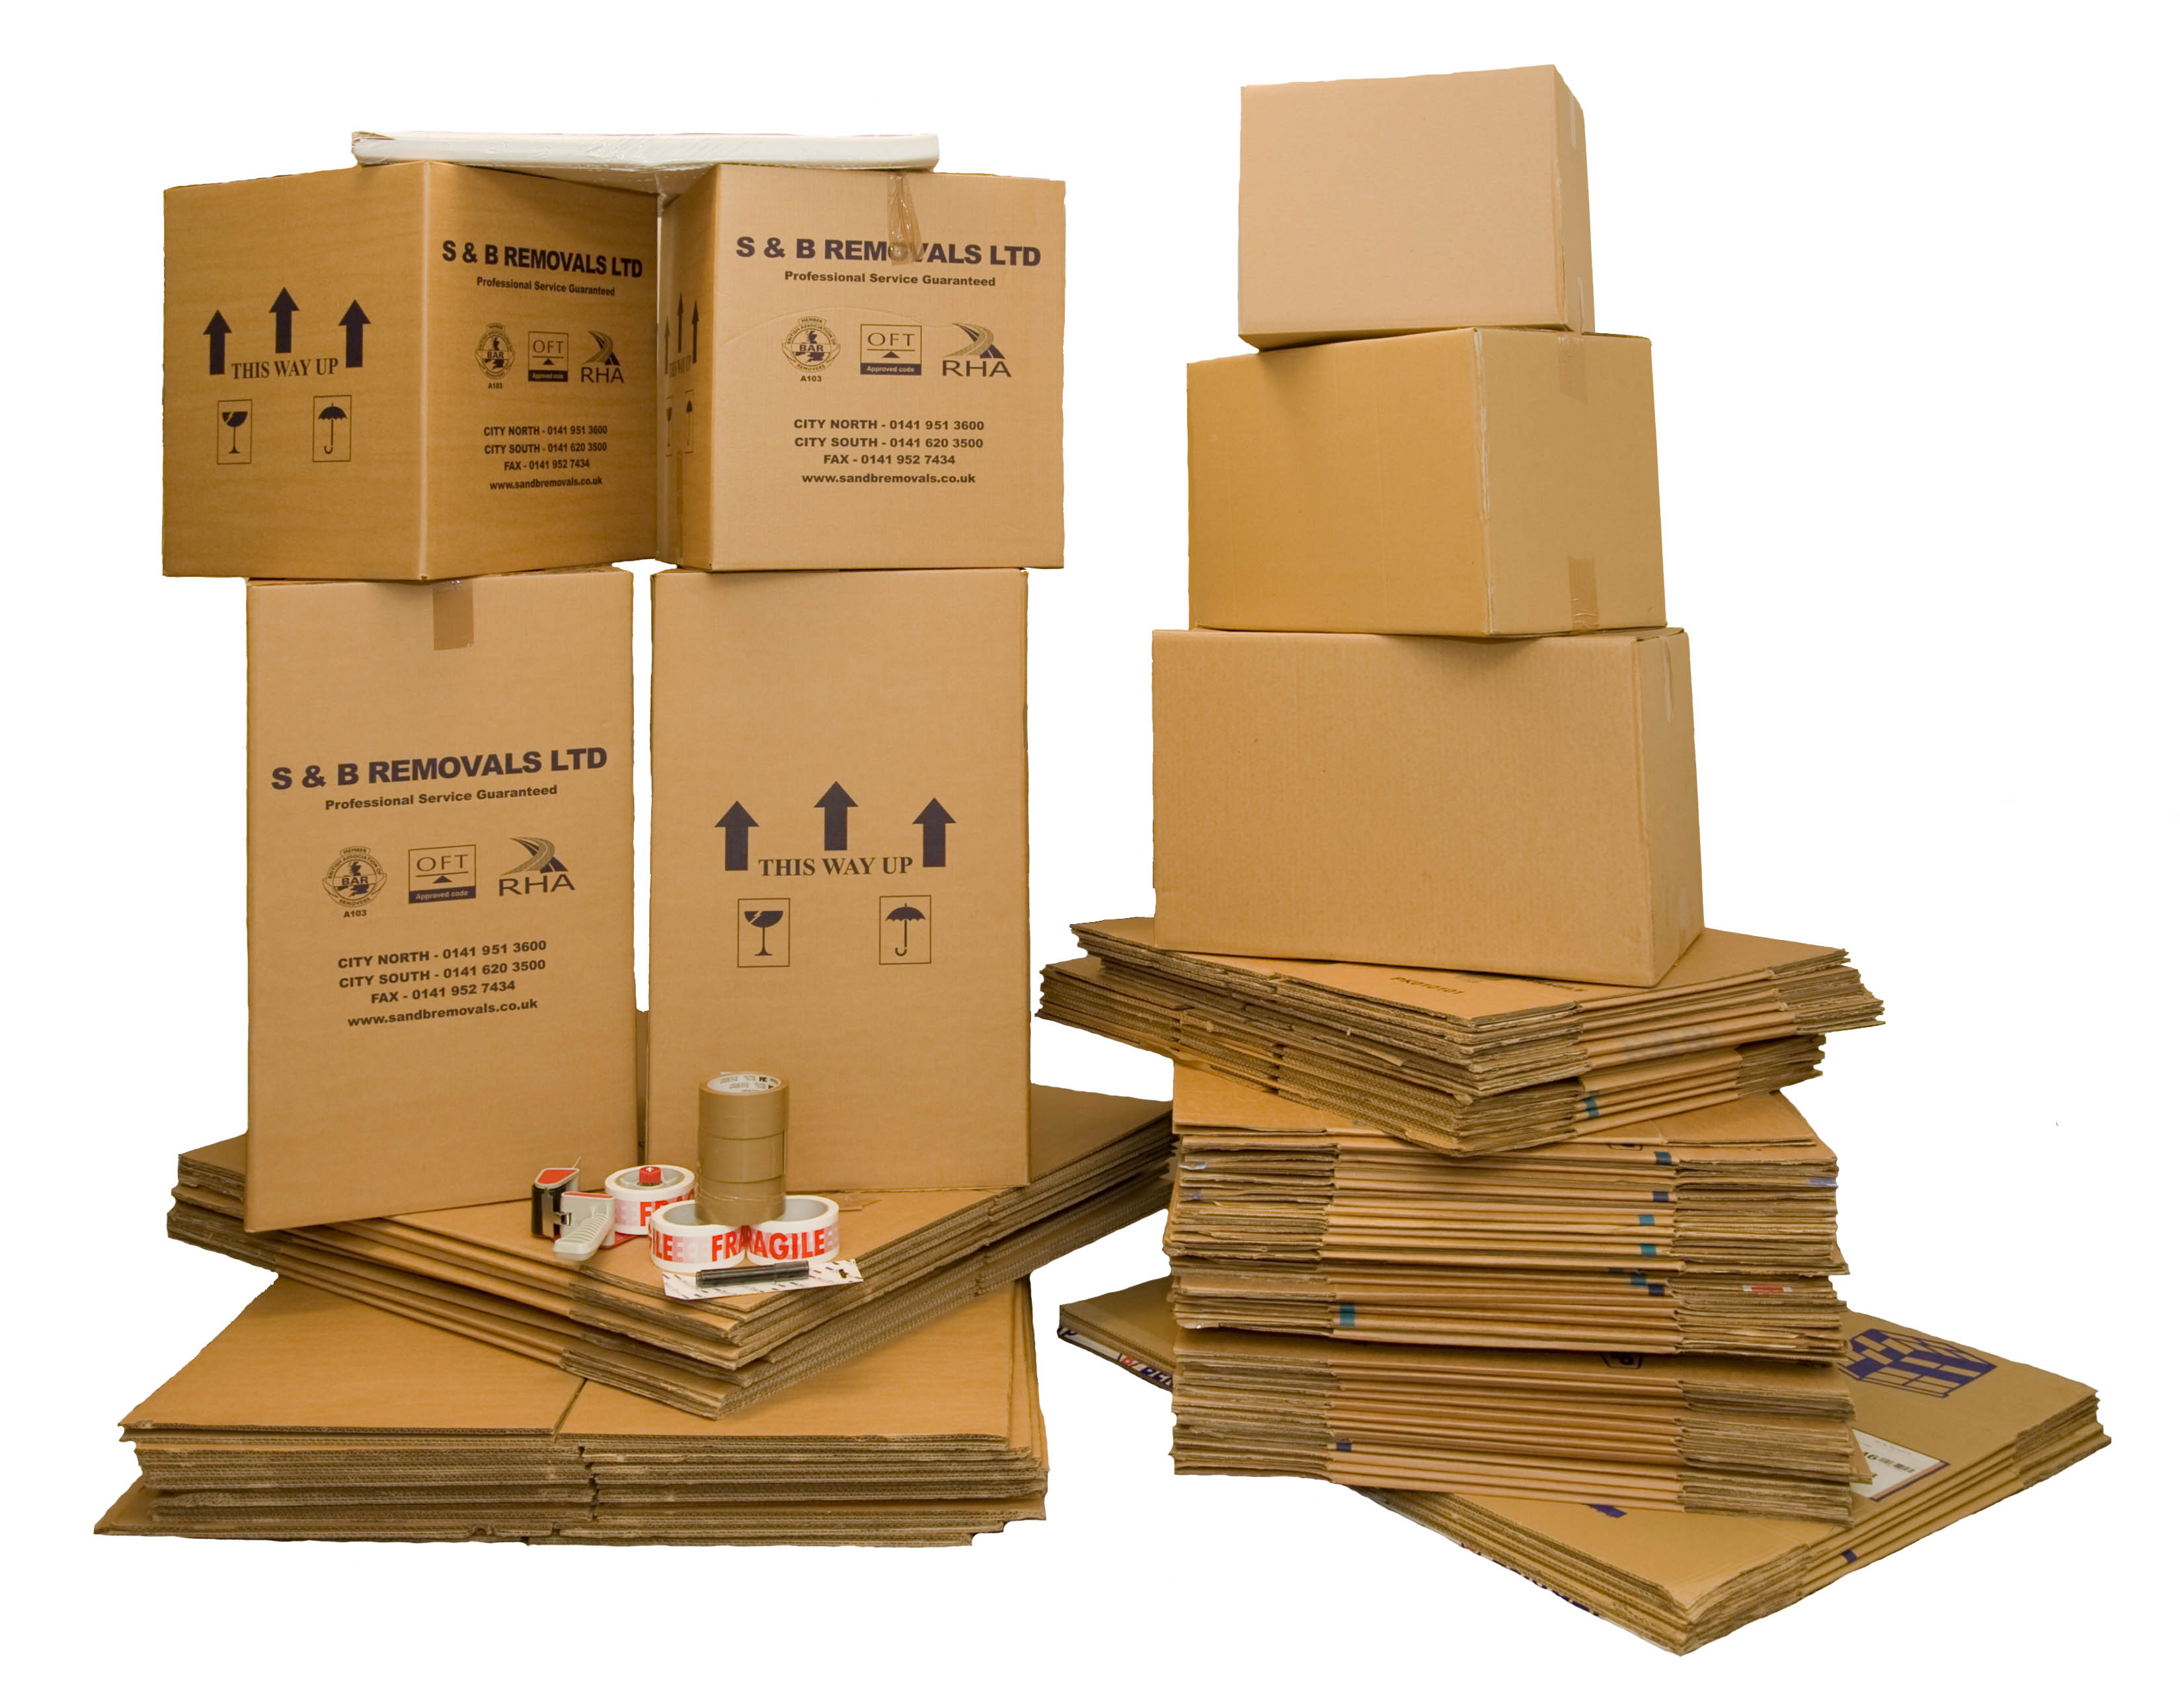 where can i buy packing paper for moving Cardboard boxes are one moving expense that can be had for free here are our favorite sources for free moving boxes 8 places to get moving boxes free of charge.